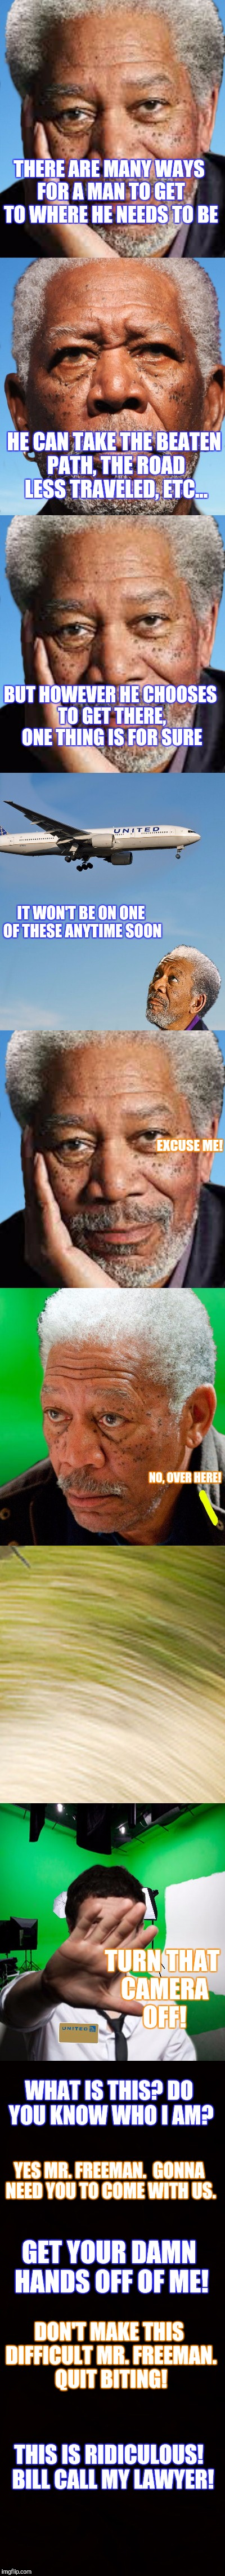 FREEMANSFREEBIE | THERE ARE MANY WAYS FOR A MAN TO GET TO WHERE HE NEEDS TO BE THIS IS RIDICULOUS!  BILL CALL MY LAWYER! HE CAN TAKE THE BEATEN PATH, THE ROAD | image tagged in morgan freeman,advice,funny,hot topic | made w/ Imgflip meme maker